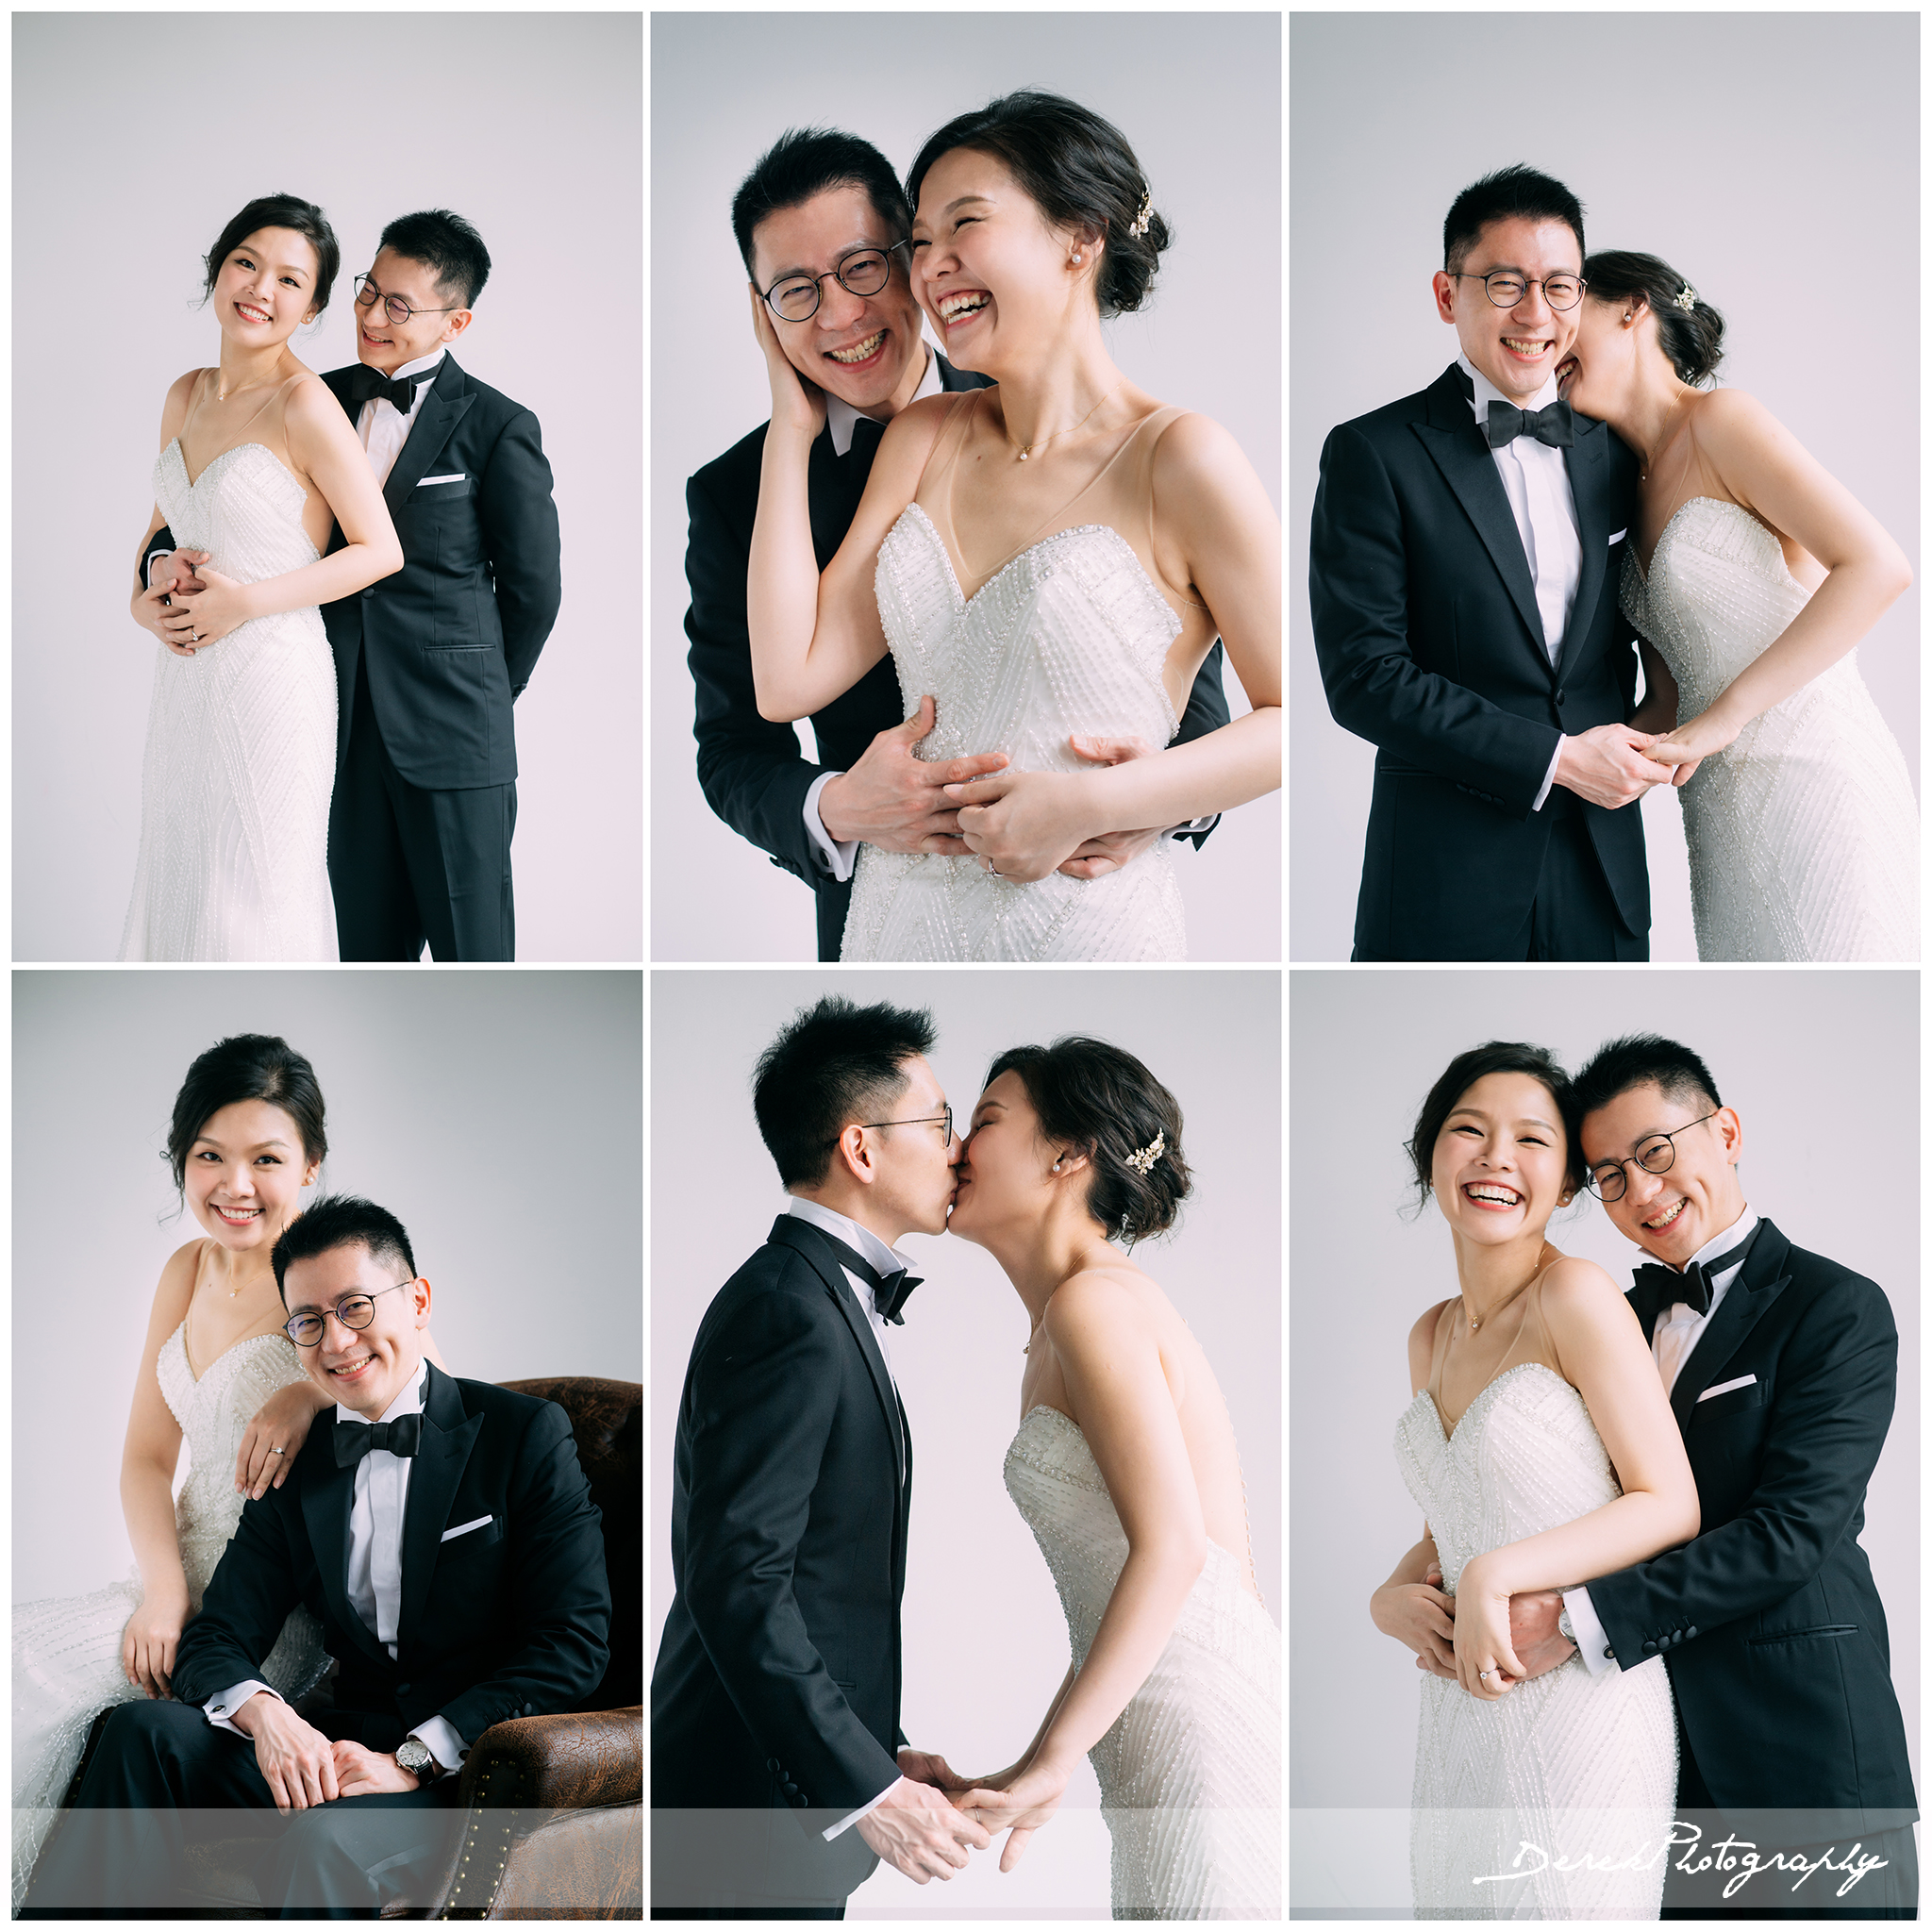 Studio Pre Wedding Is Now Available Again